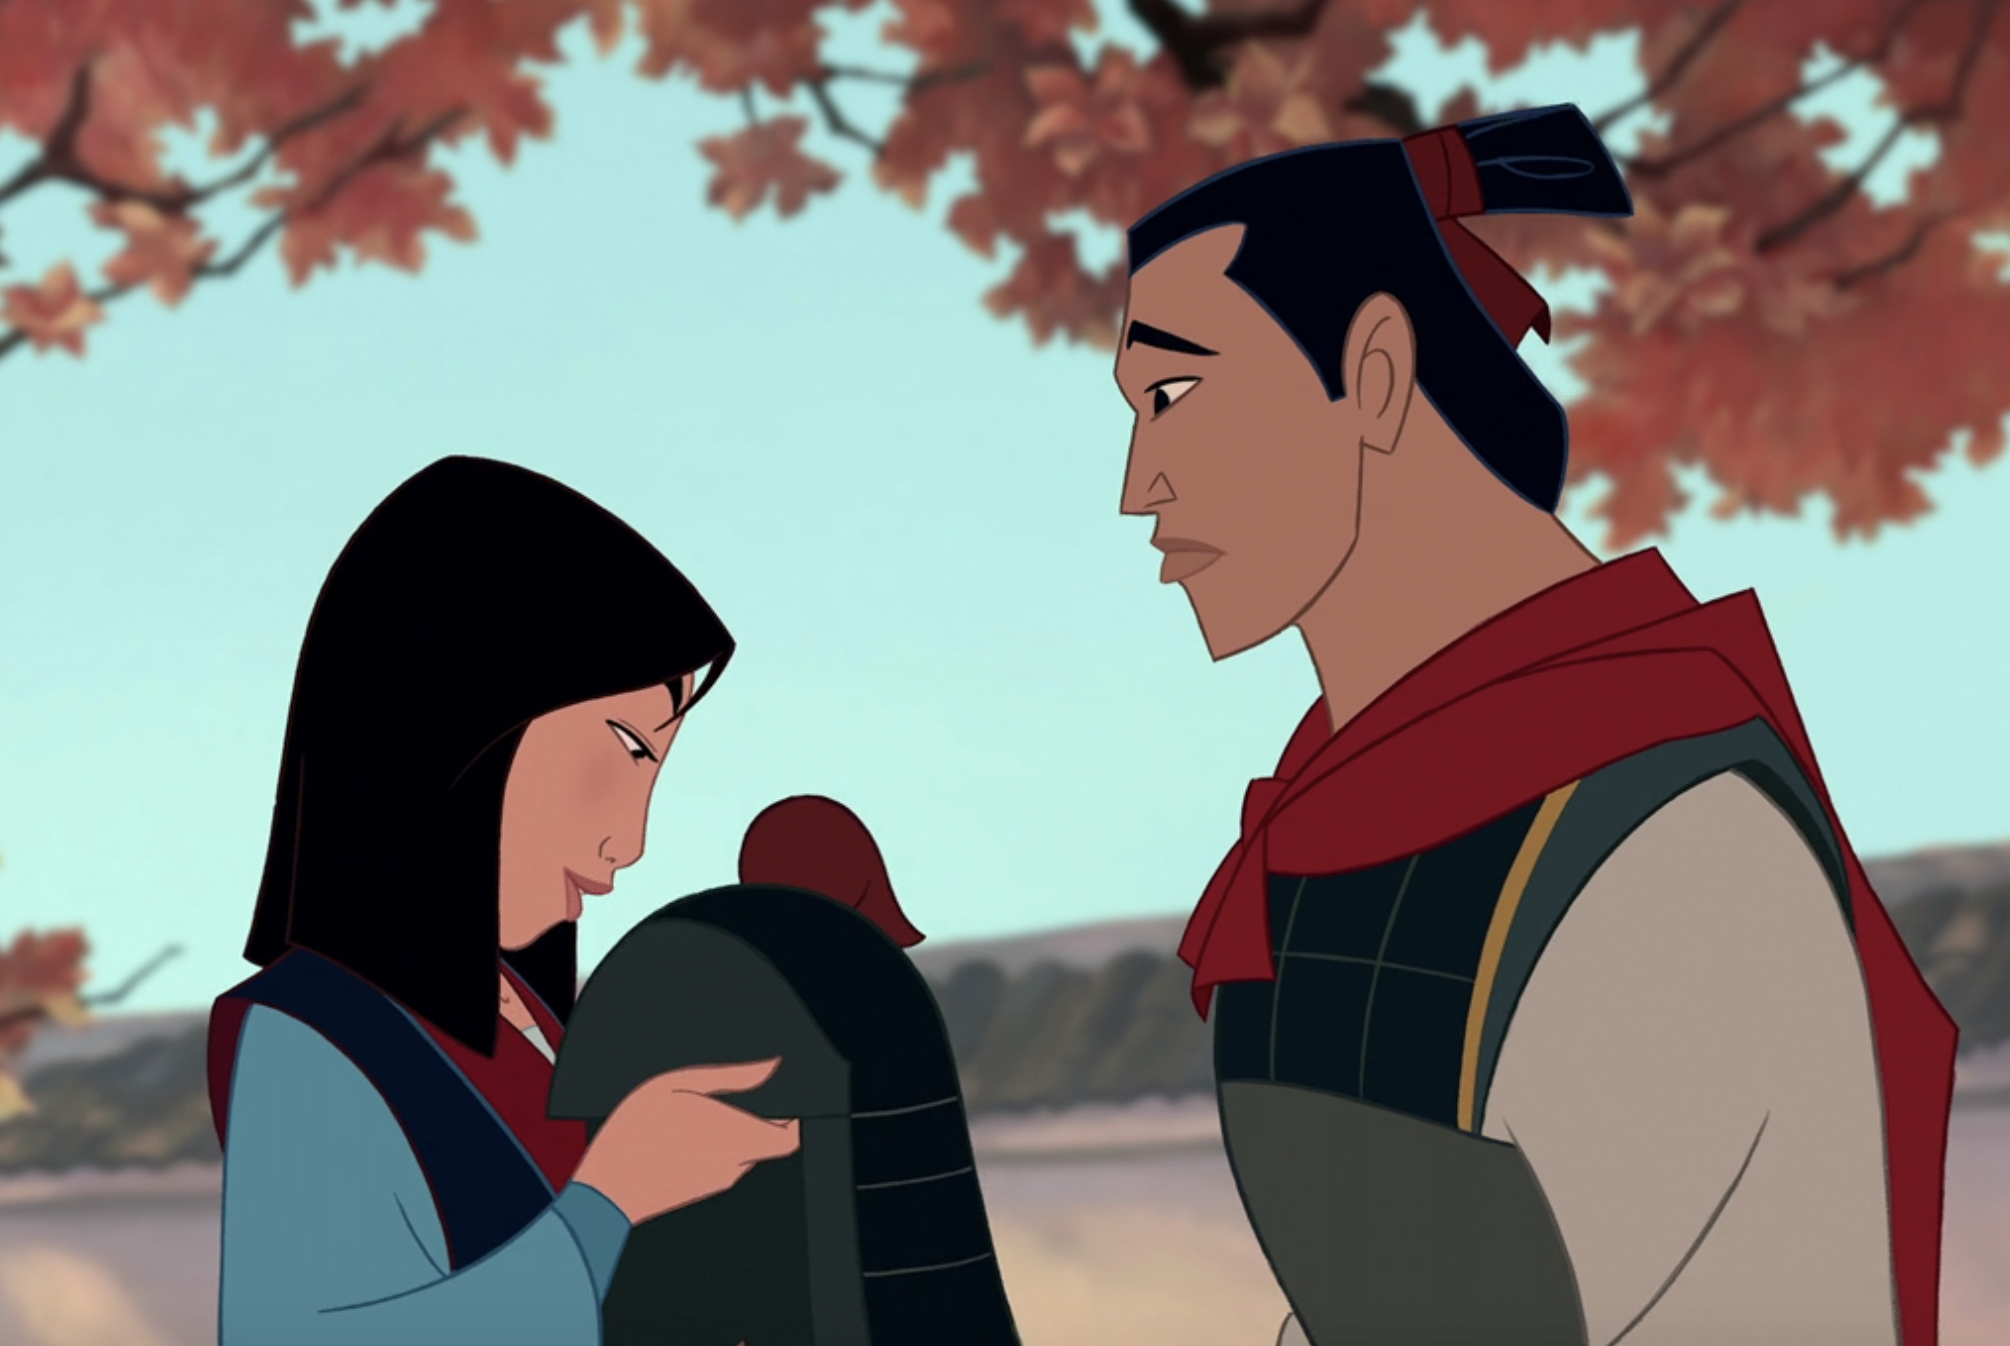 Li Shang handing a helmet to Mulan at the end of the movie